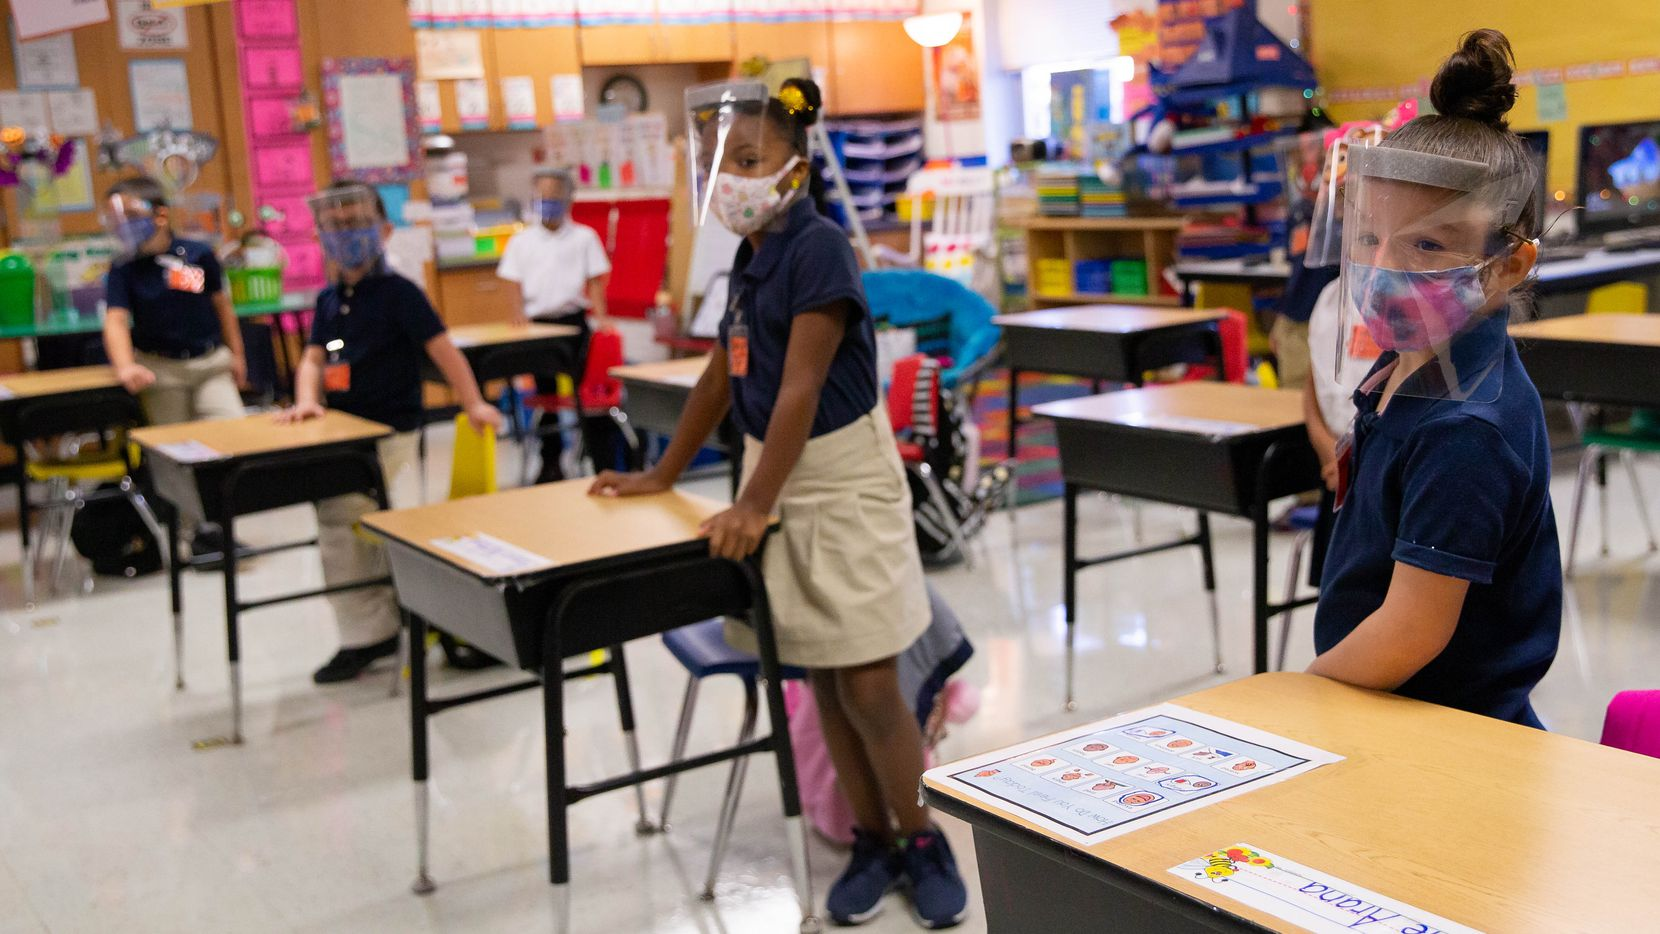 Students in Jerry R. Junkins Elementary teacher Christine Ricci's classroom in Carrollton on Oct. 5, 2020, when students from all grade levels in the district were allowed to return to in-person instruction. (Juan Figueroa/ The Dallas Morning News)